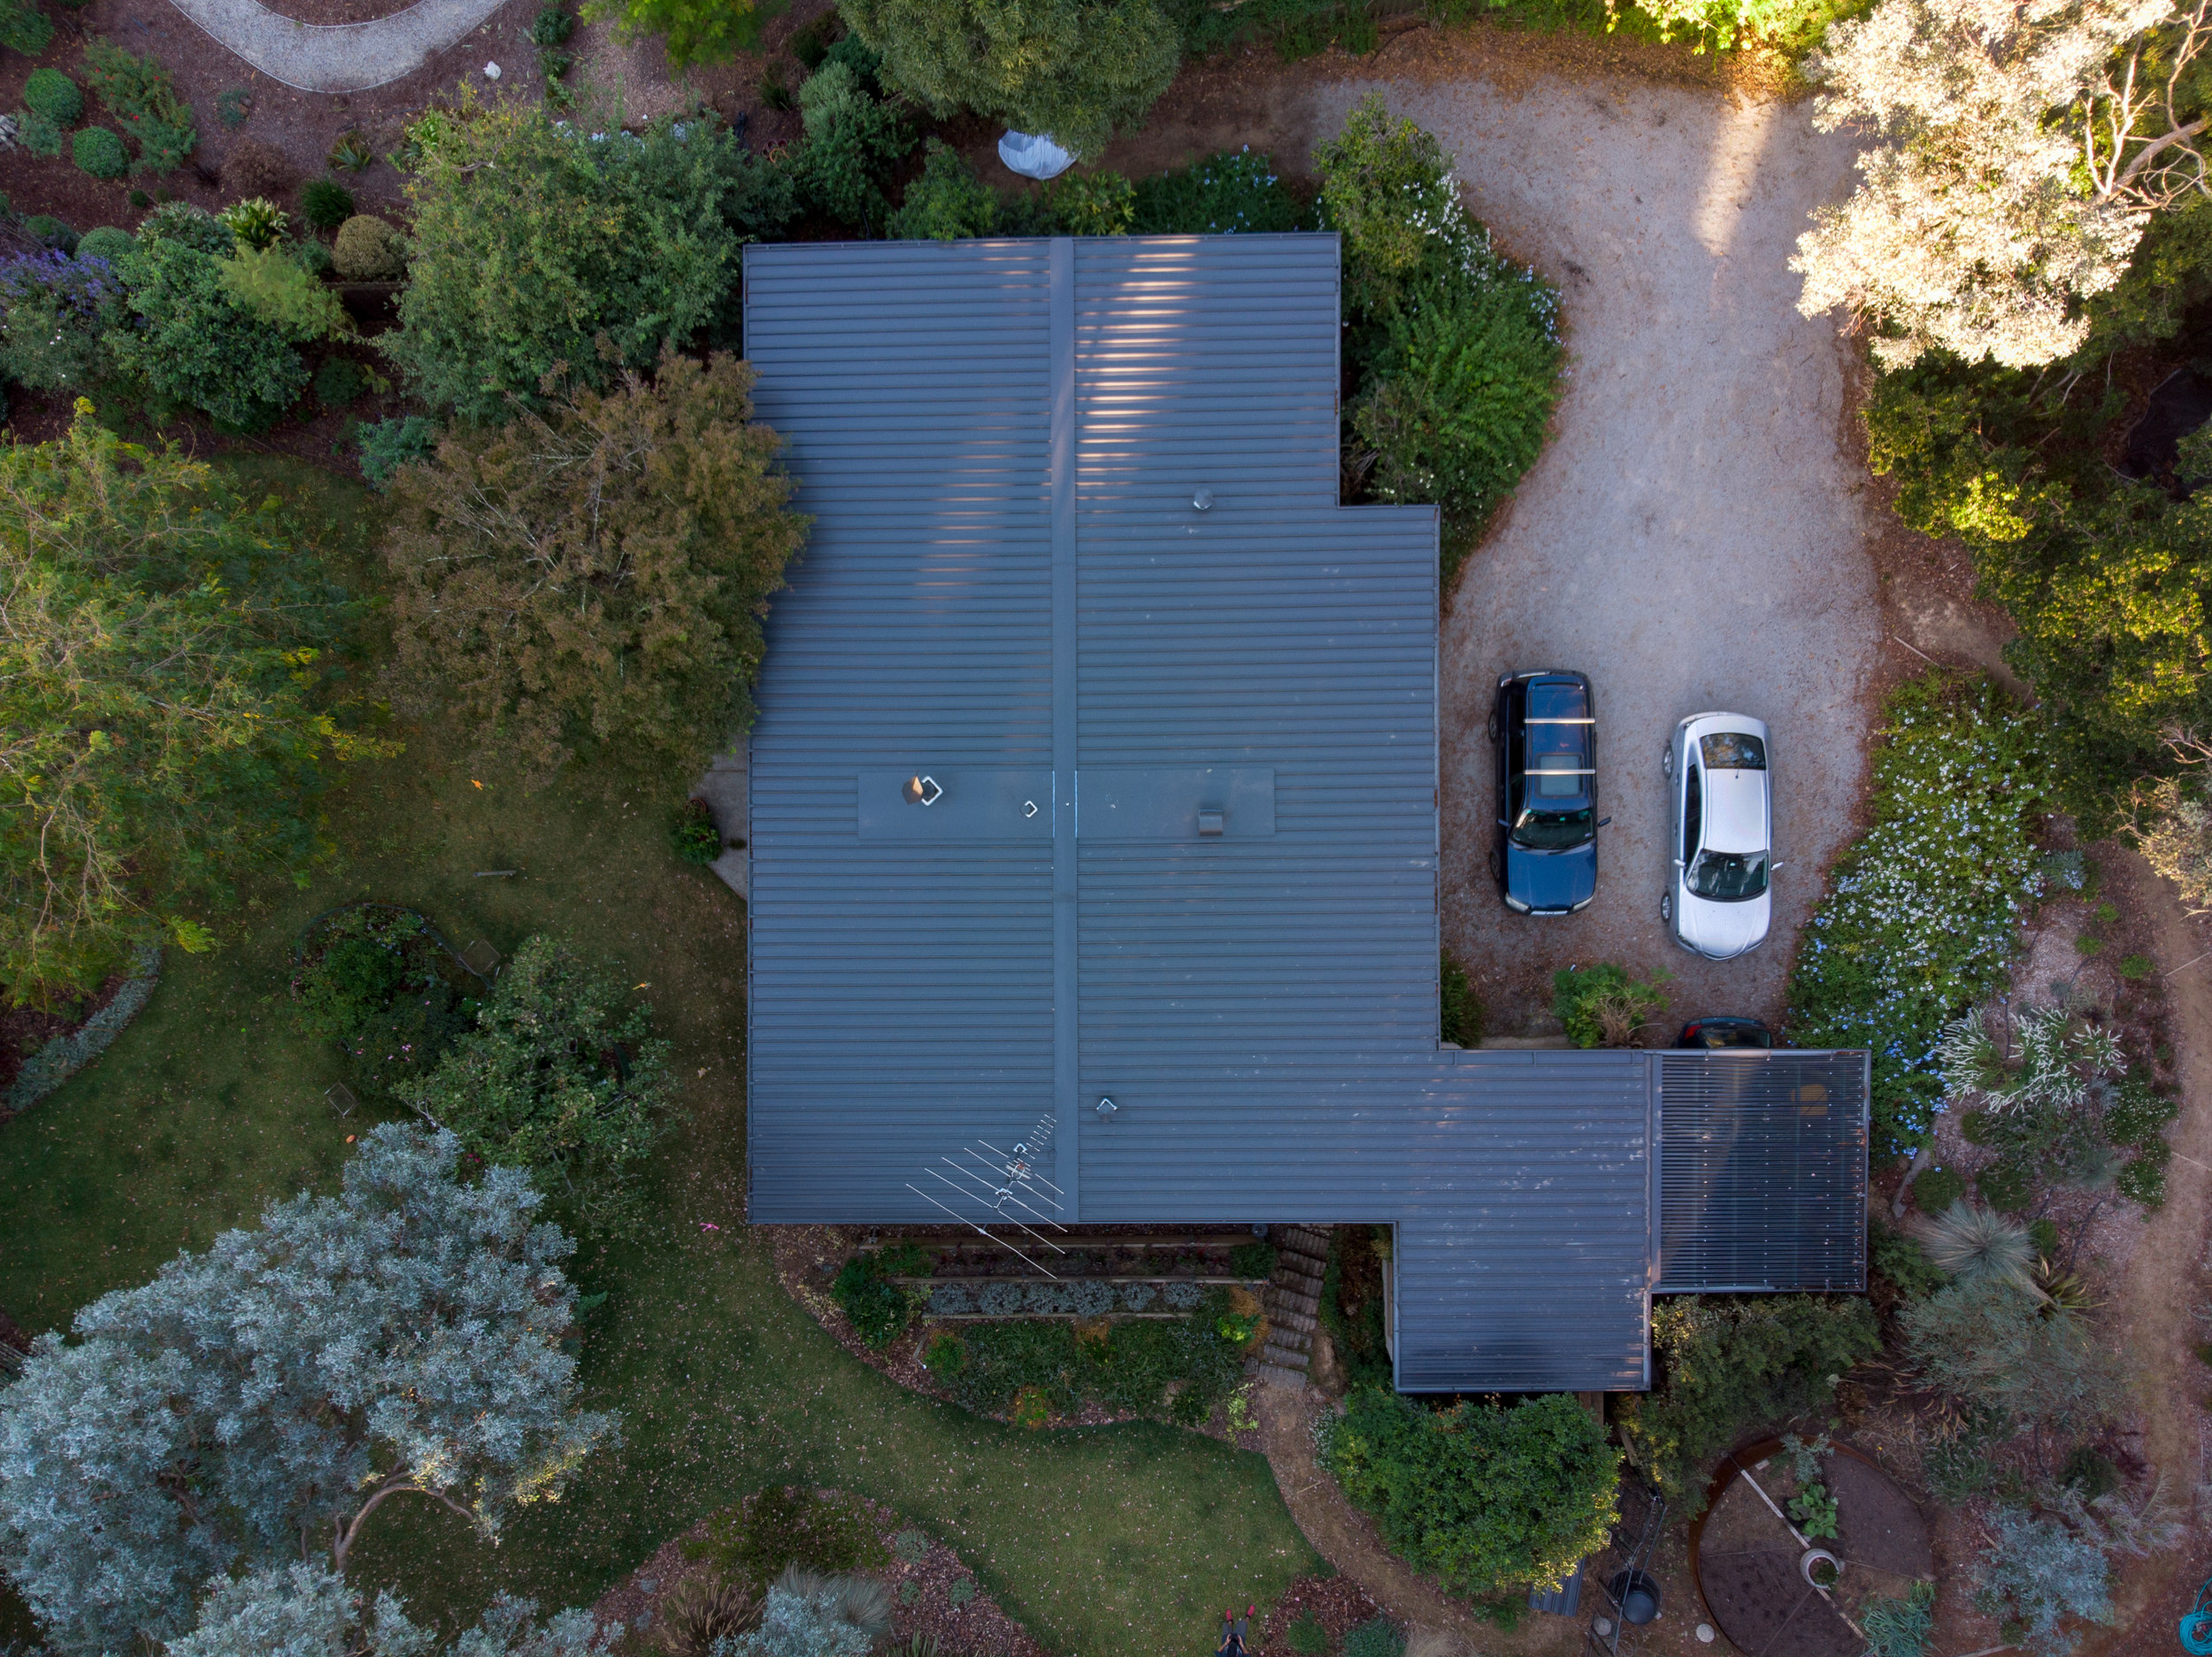 DK Roofing - Metal Roofing Solutions - After.jpg